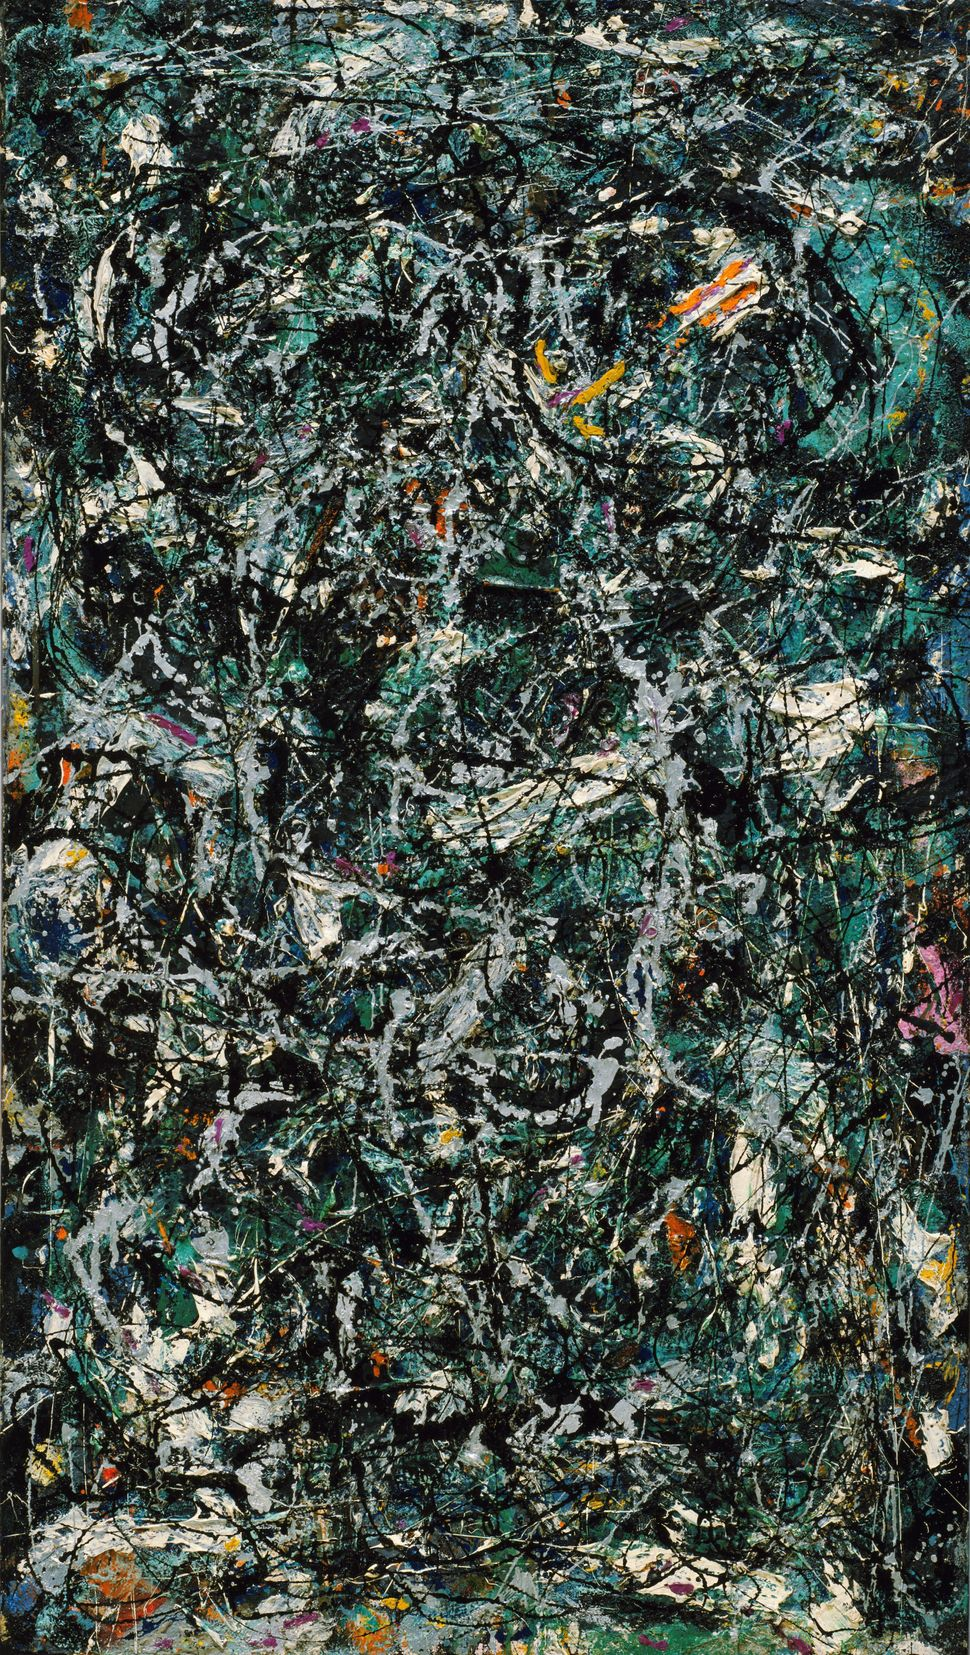 Jackson Pollock (America, 1912-1956). Full Fathom Five. 1947. Oil on canvas with nails, tacks, buttons, key, coins, cigarette